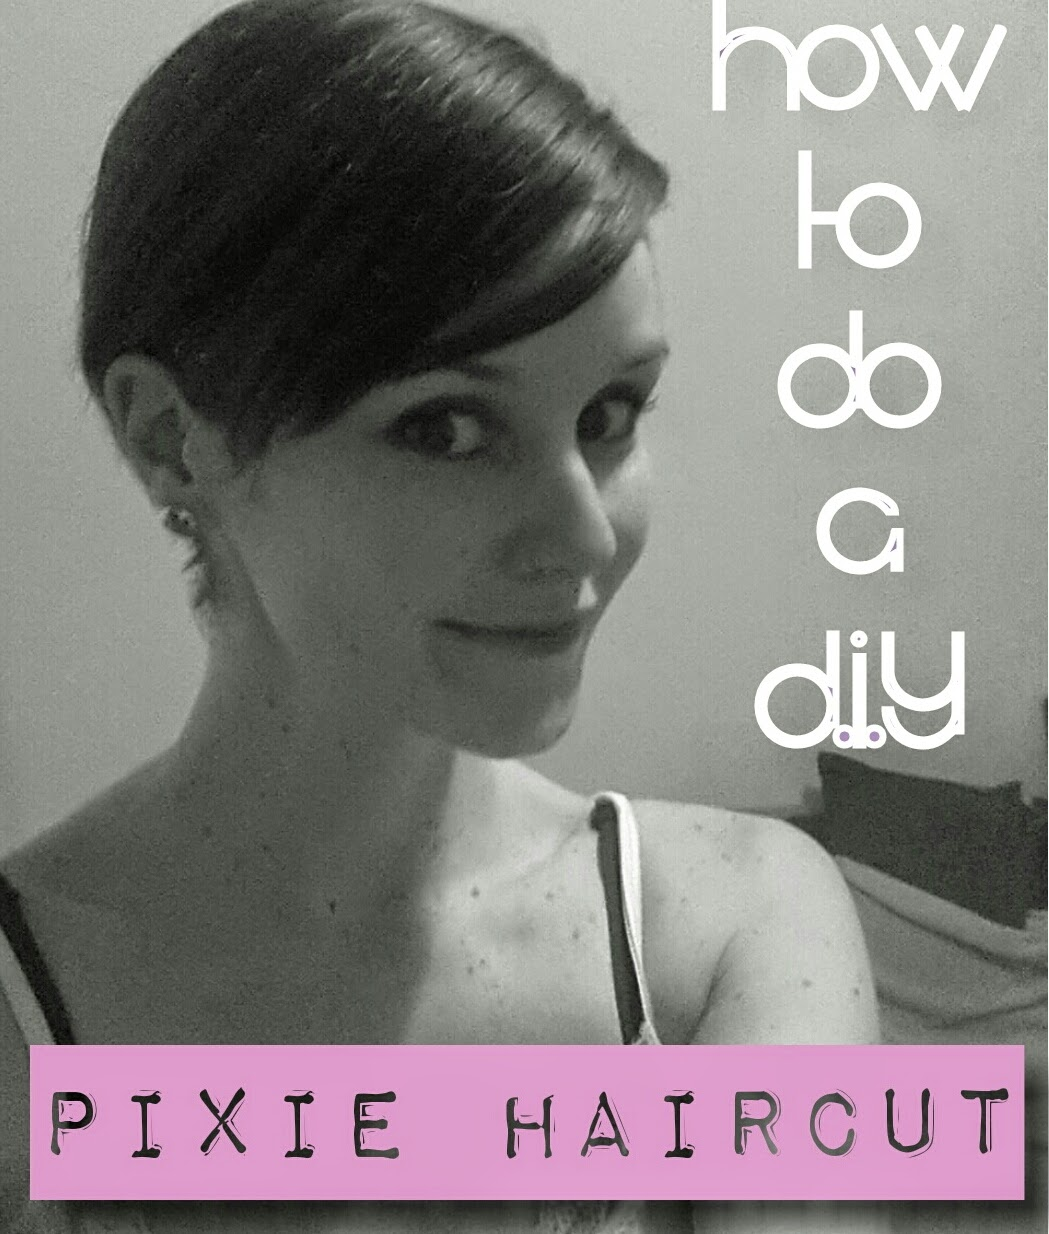 How To Cut Pixie Haircut Yourself